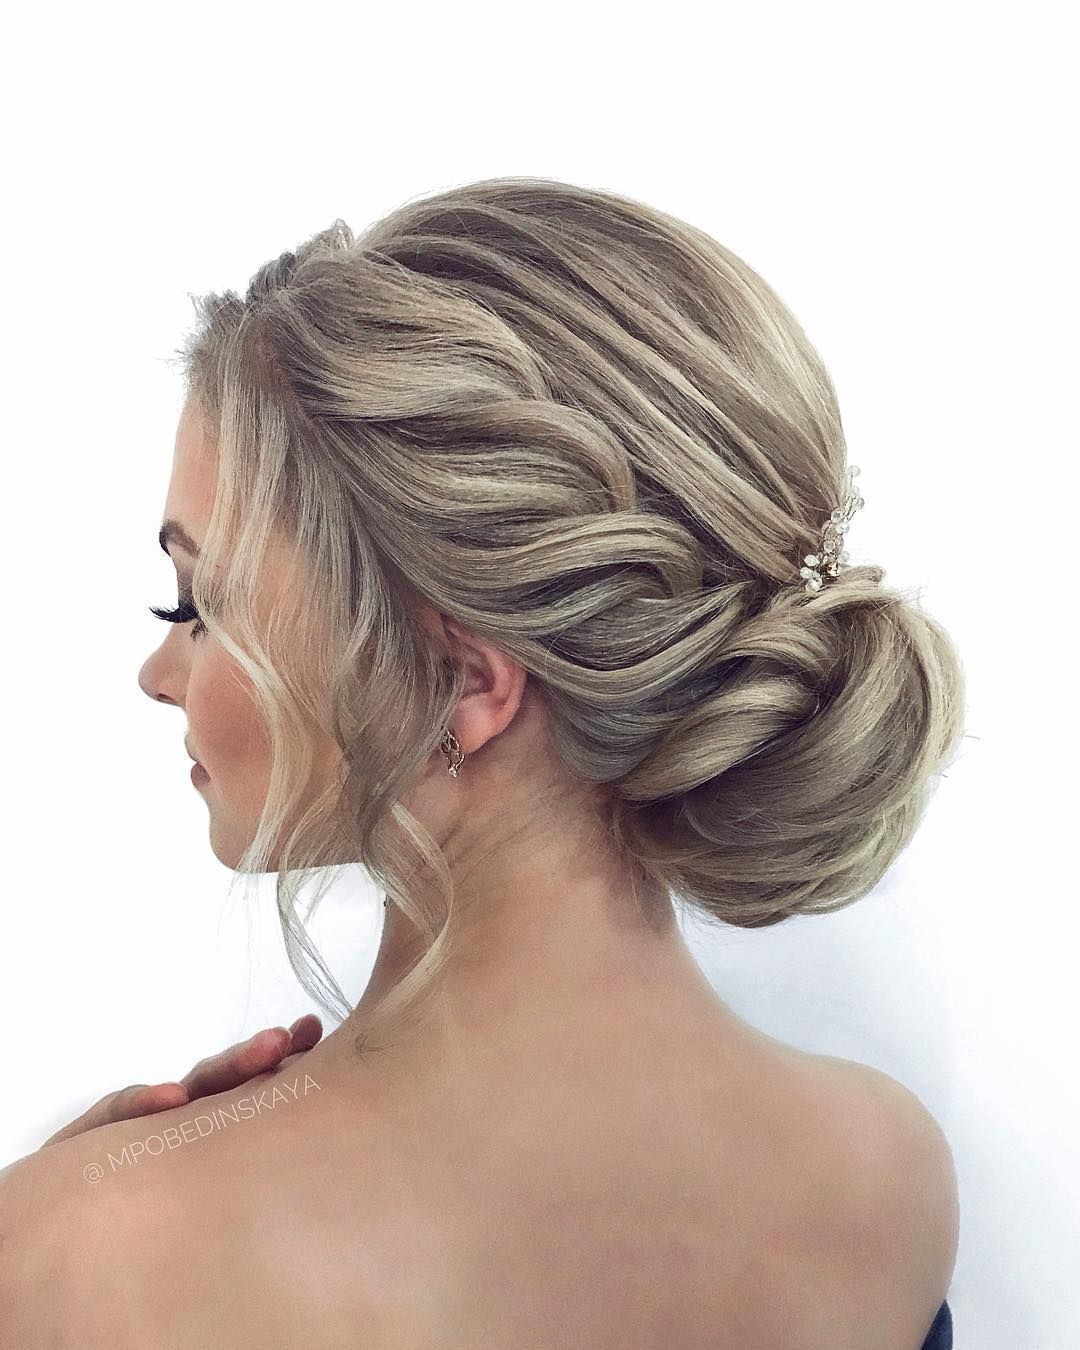 Romantic Hairstyle To Inspire You Hair Styles Romantic Hairstyles Grad Hairstyles